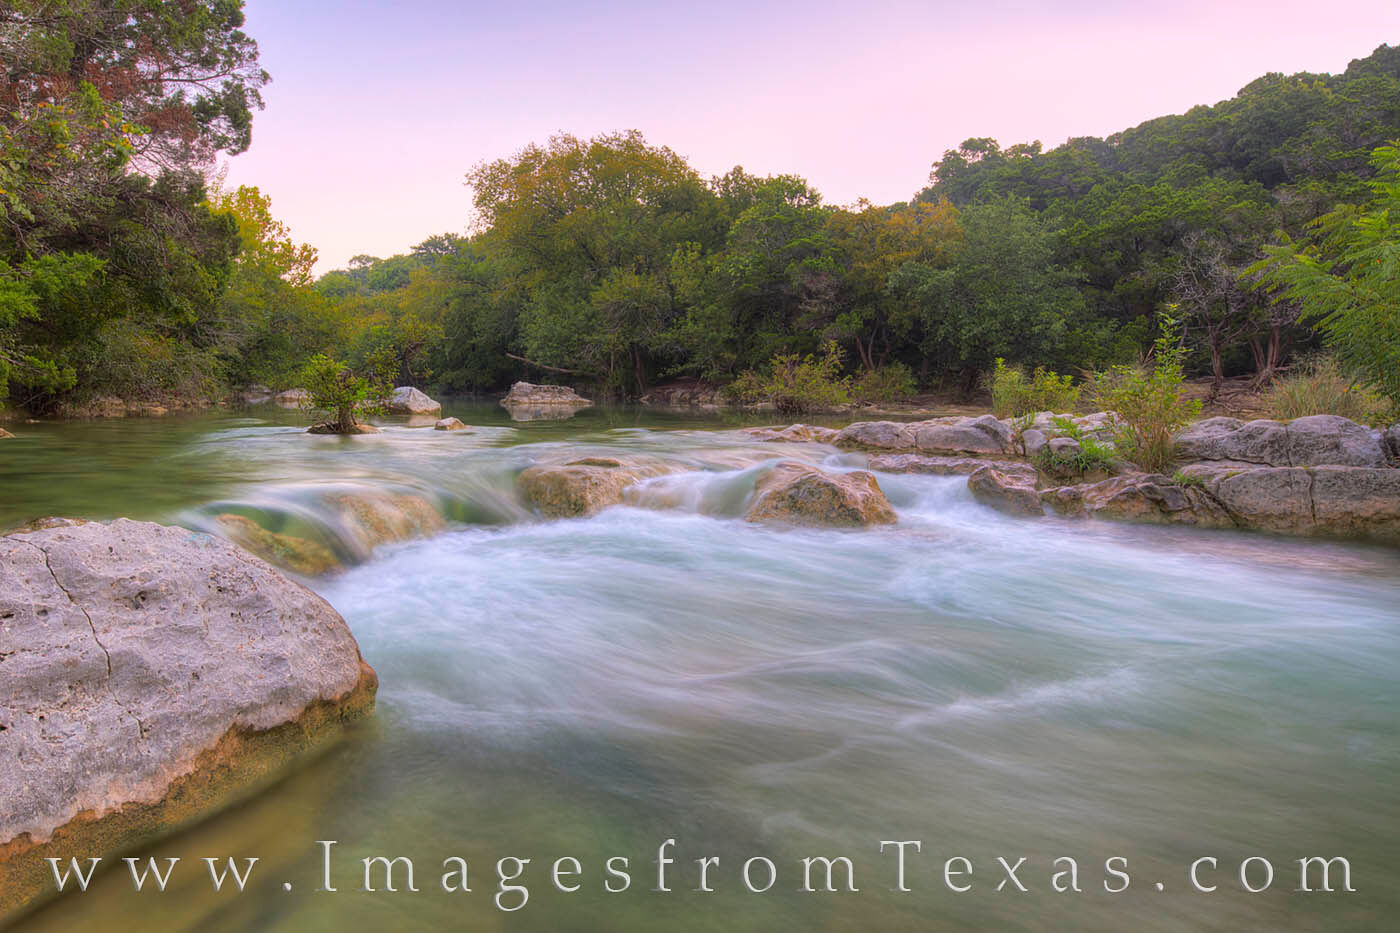 barton creek greenbelt, austin texas, austin greenbelt, twin falls, austin hiking, austin texas photos, photo